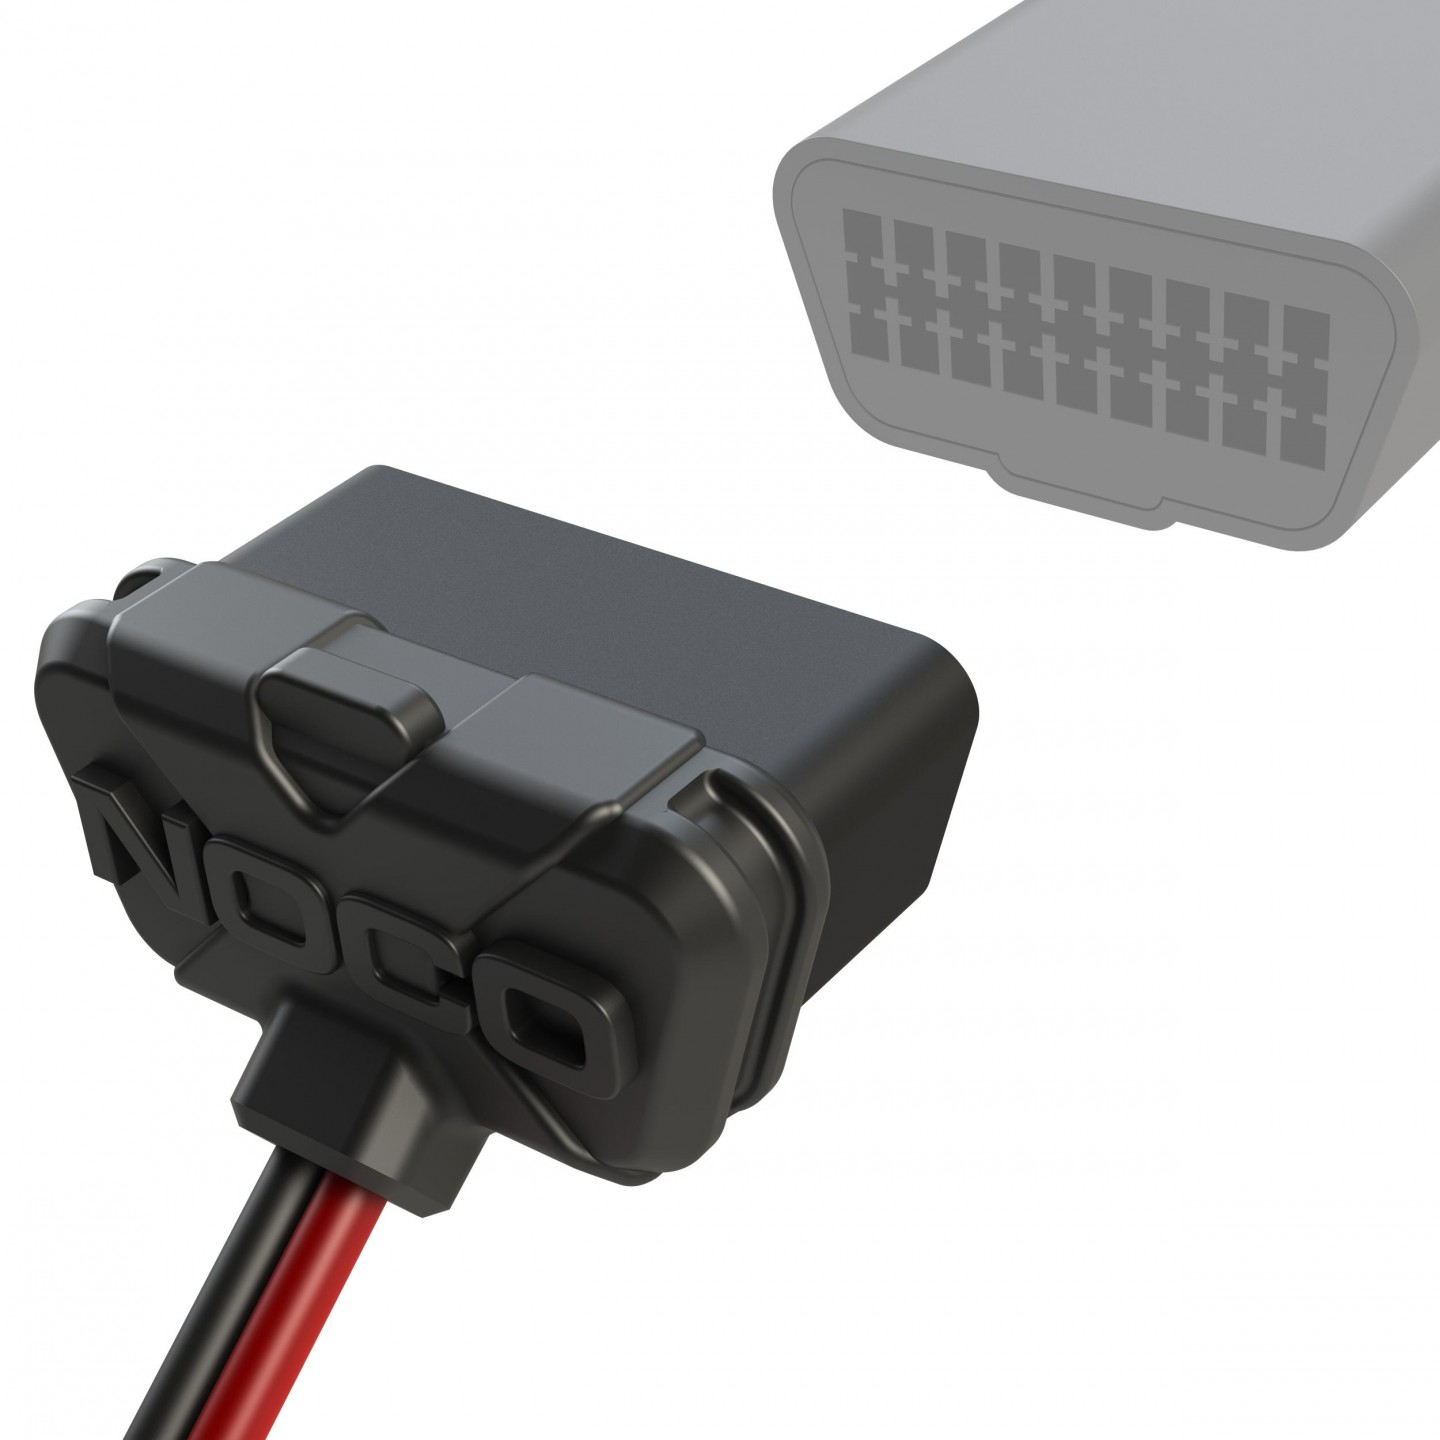 X-Connect OBDII Connector